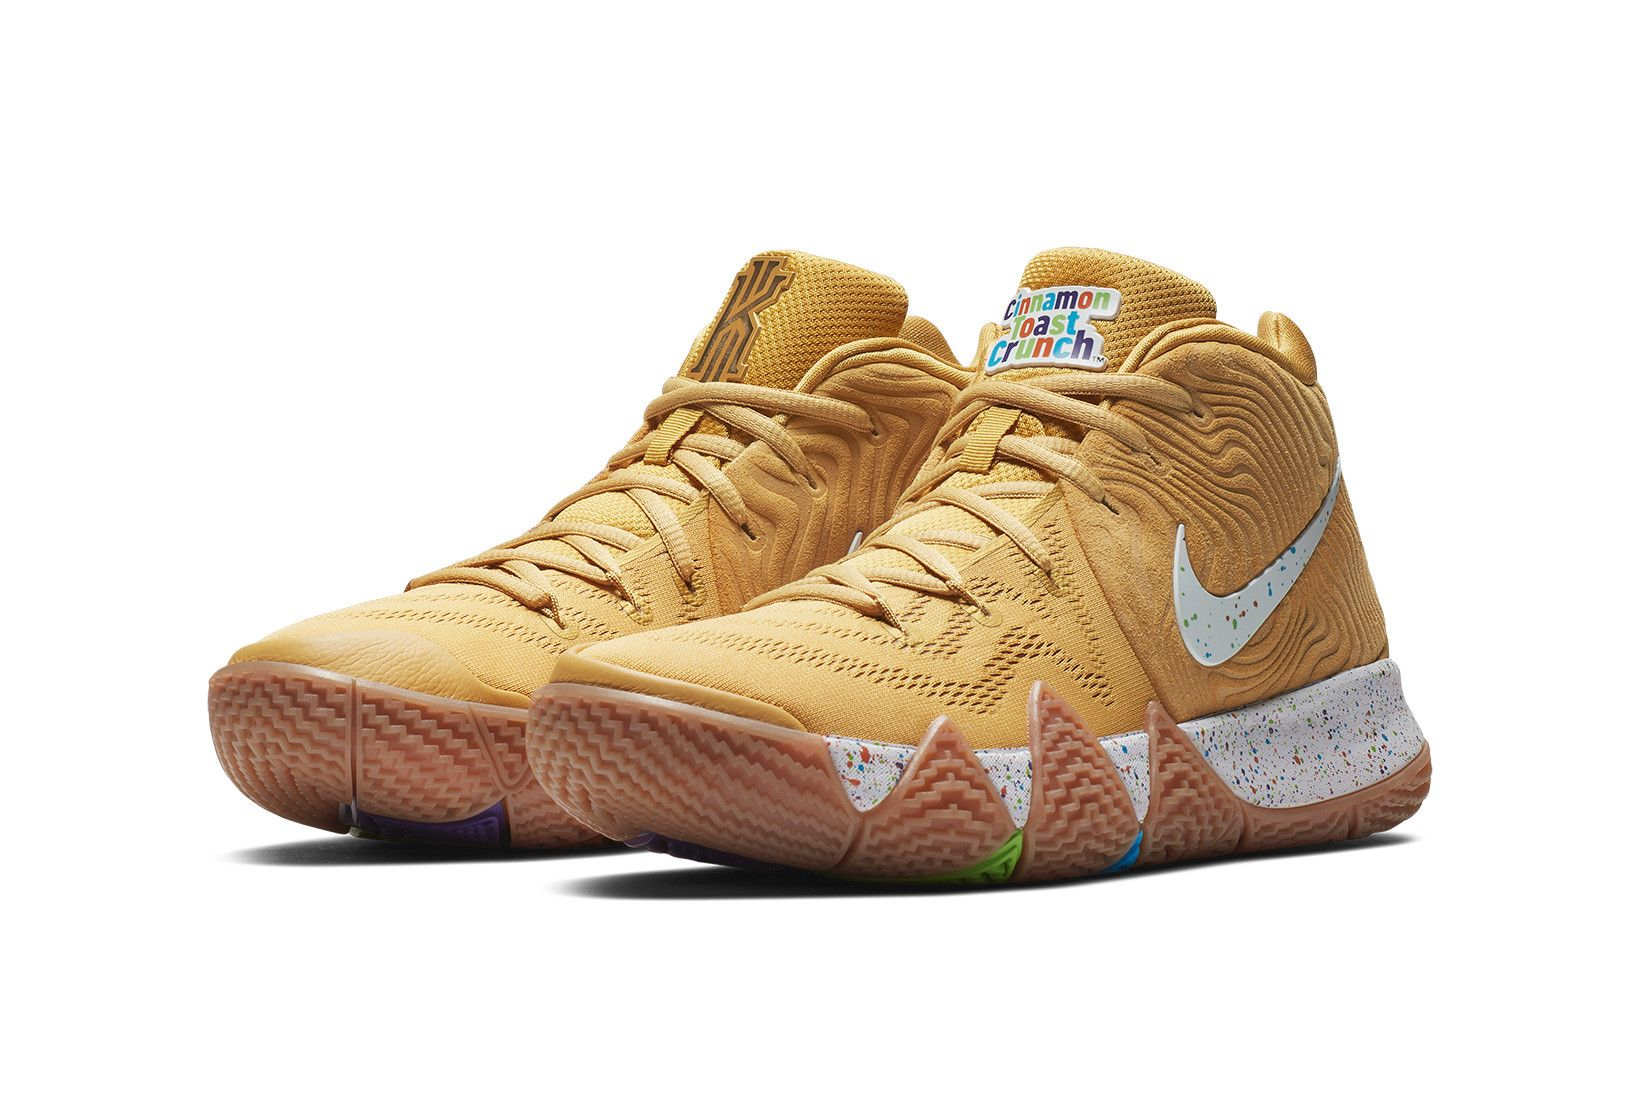 low priced ab71f 36d1a The Nike Kyrie 4